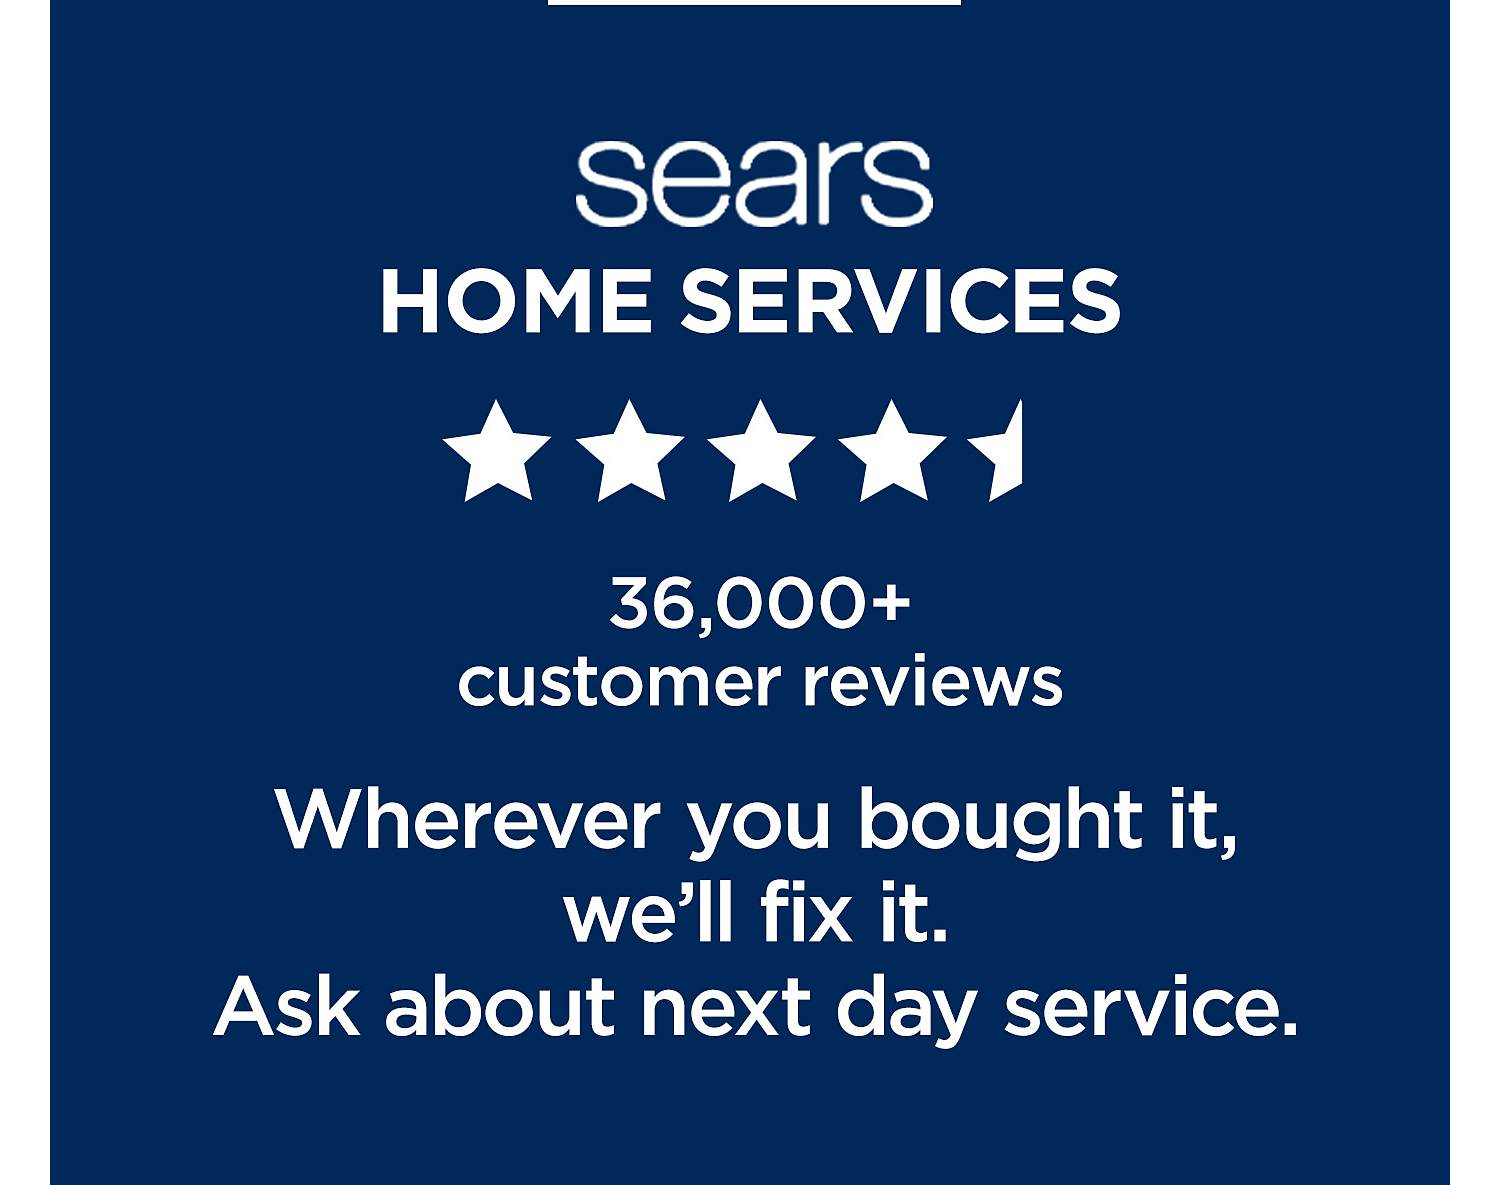 Sears Home Services. 36,000+ customer reviews. Wherever you bought it, we'll fix it.  Ask about next day service.